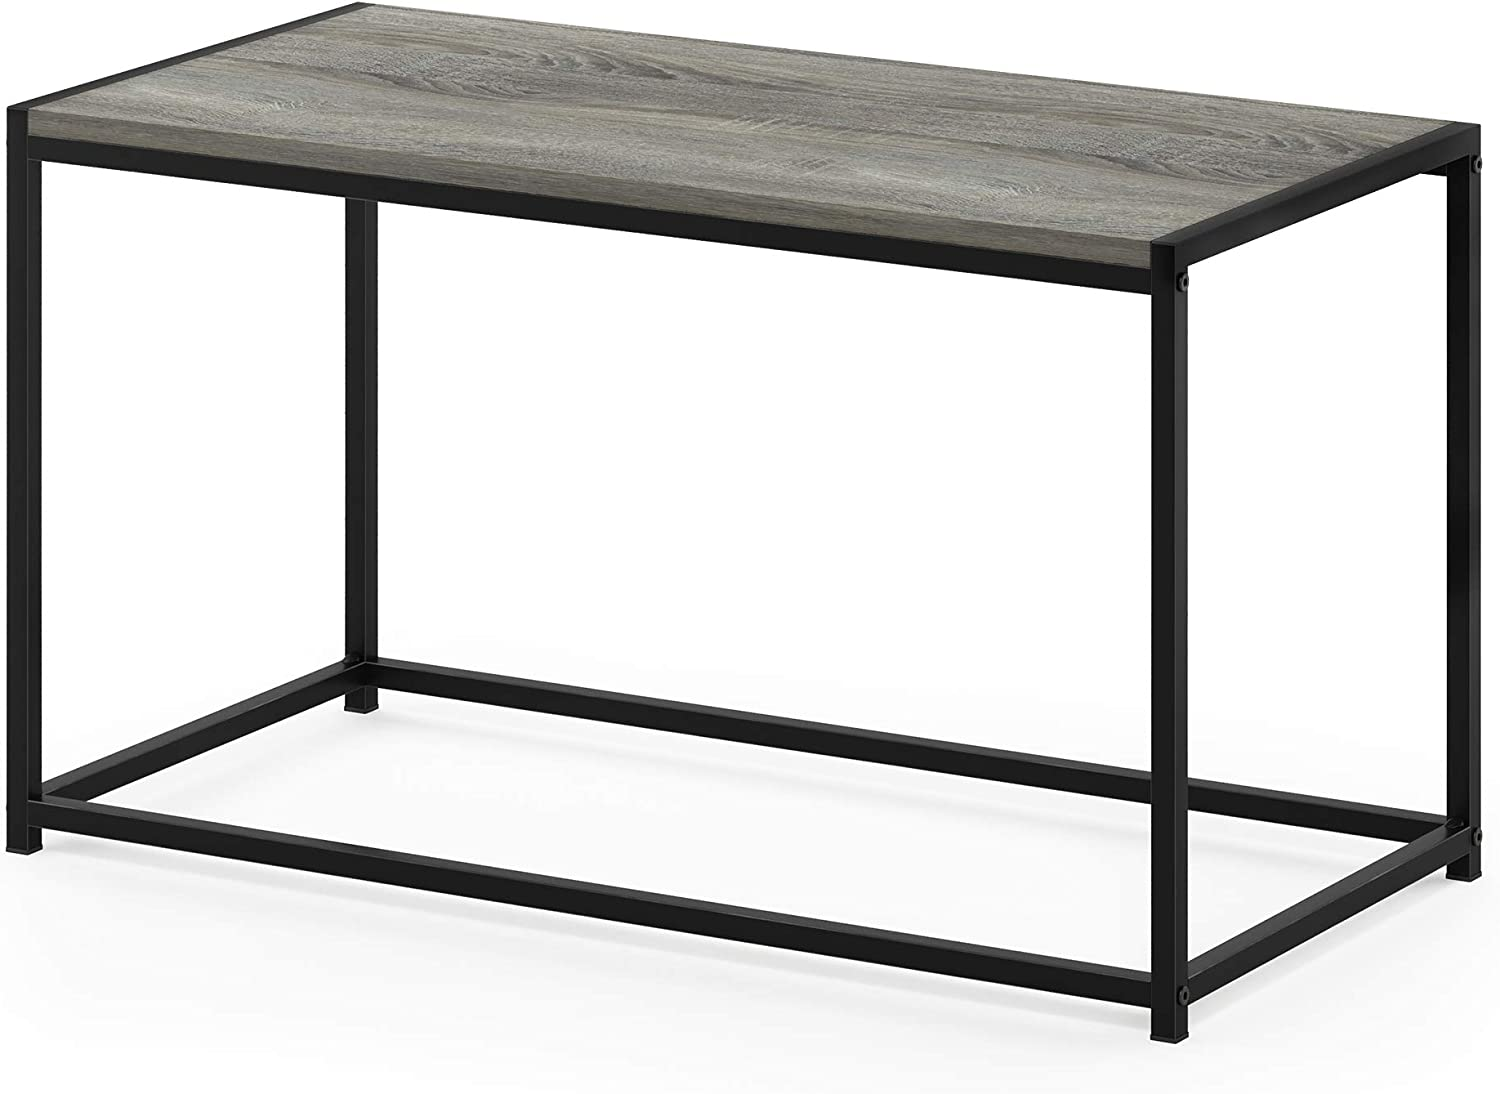 FURINNO Camnus Modern Living Coffee Table, French Oak Grey